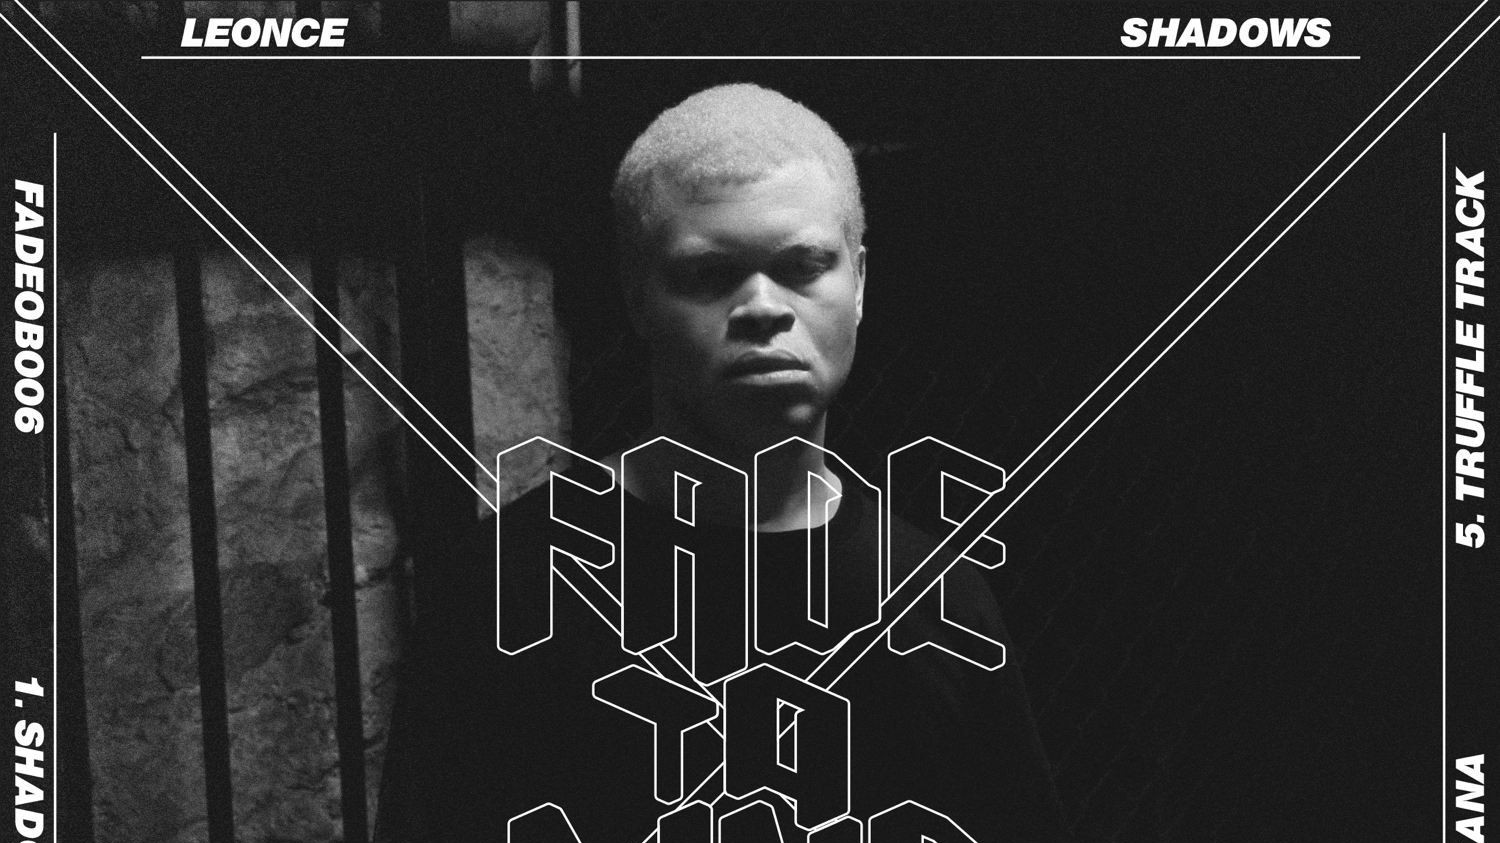 Leonce Shares New EP, 'Shadows,' for Free